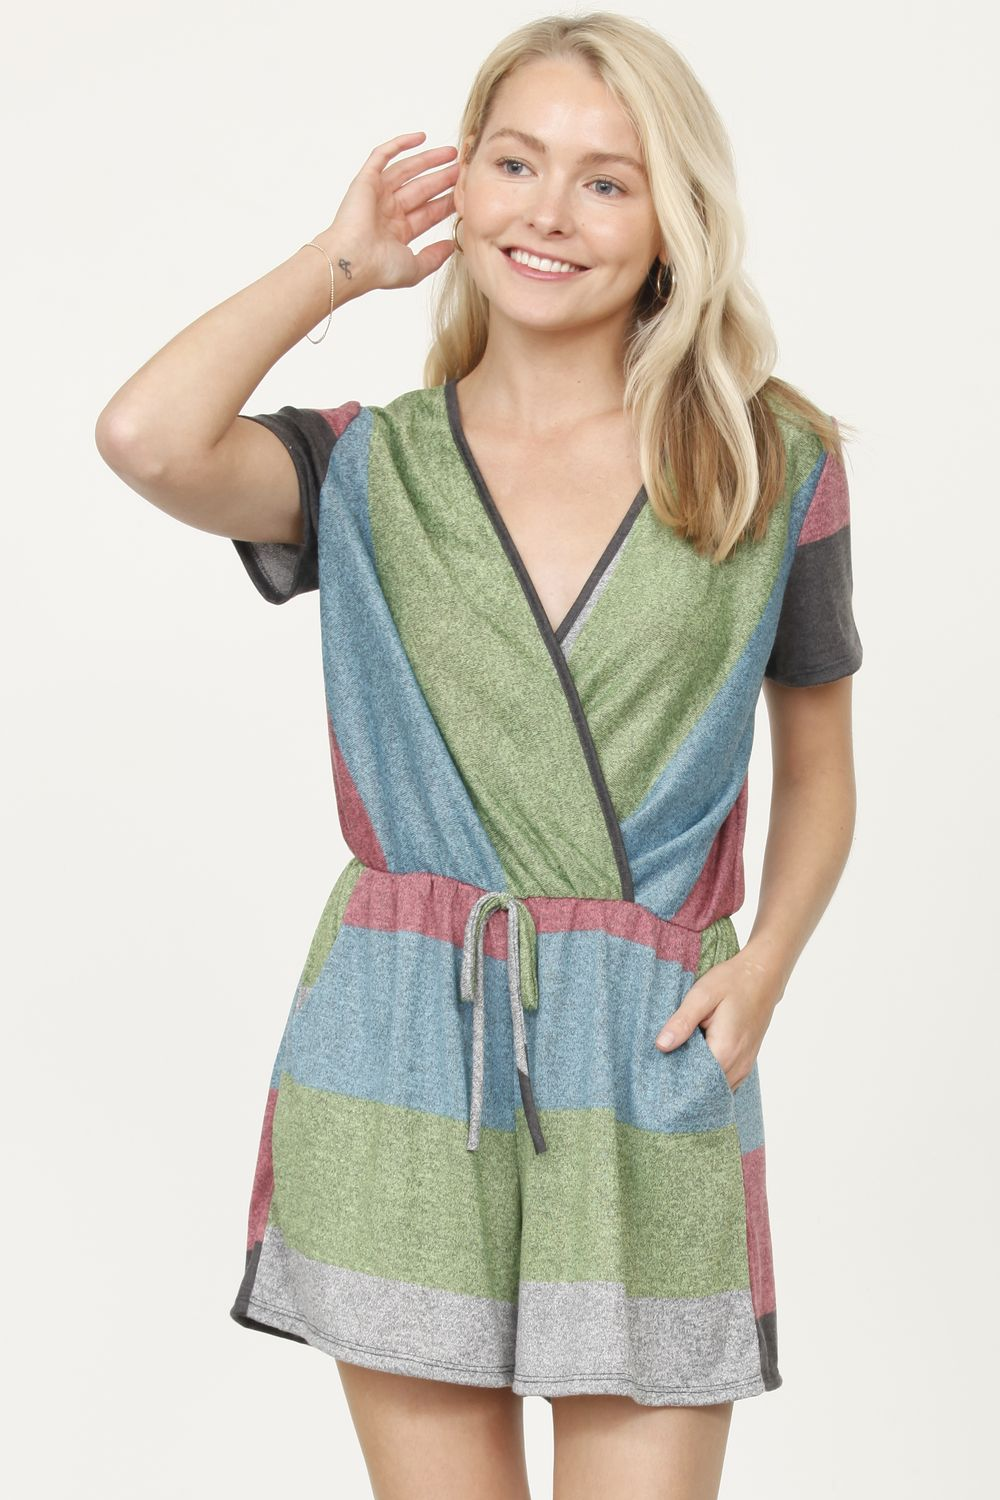 Heather Sage & Mint Short Sleeve Surplice Romper